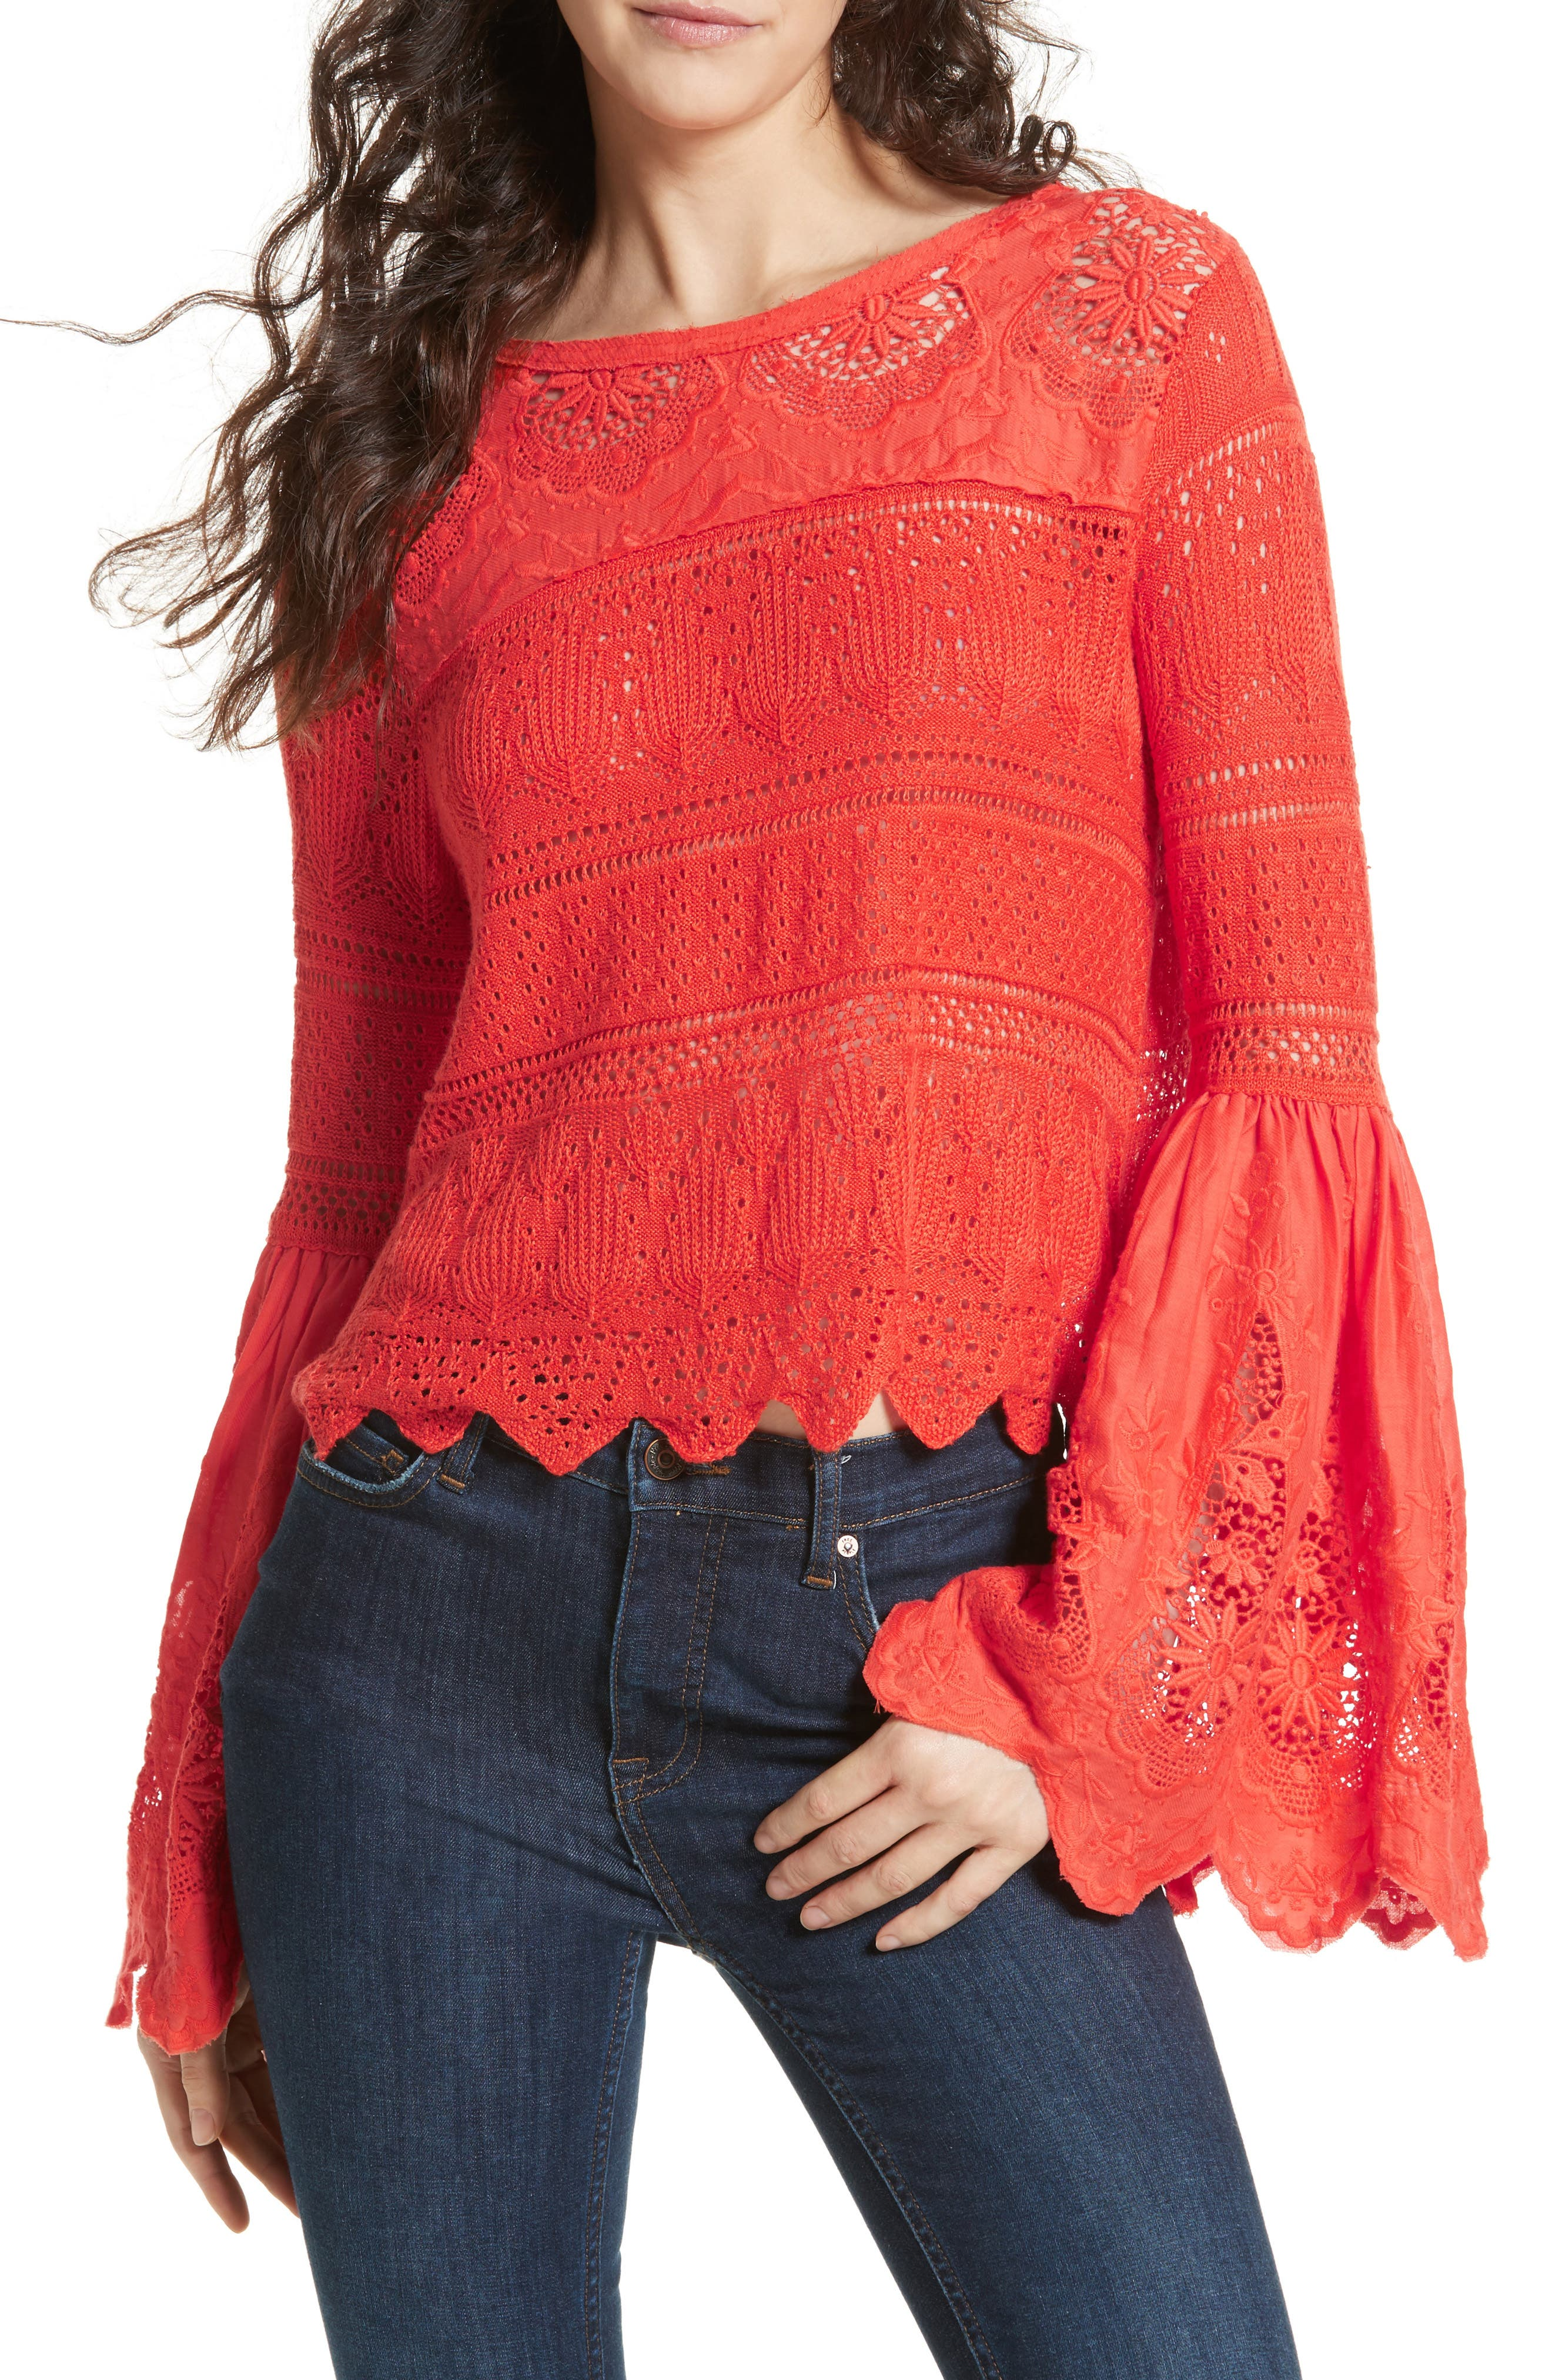 Once Upon a Time Lace Top,                             Alternate thumbnail 7, color,                             Red